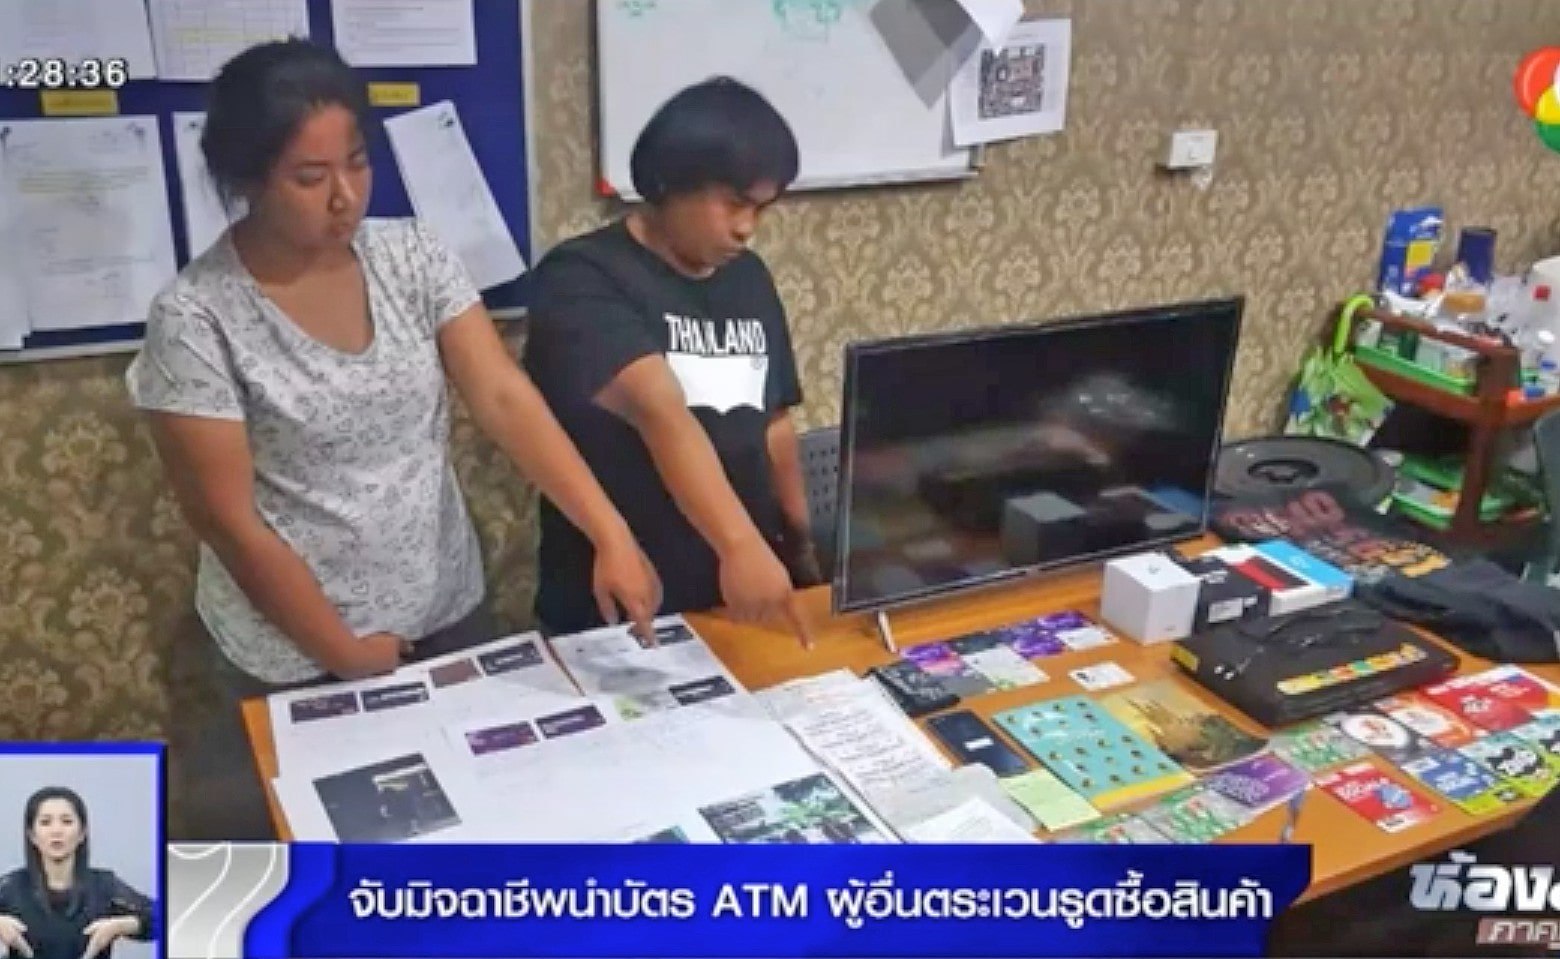 Bangkok: 400,000 baht spending spree and holiday with stolen ATM cards | The Thaiger